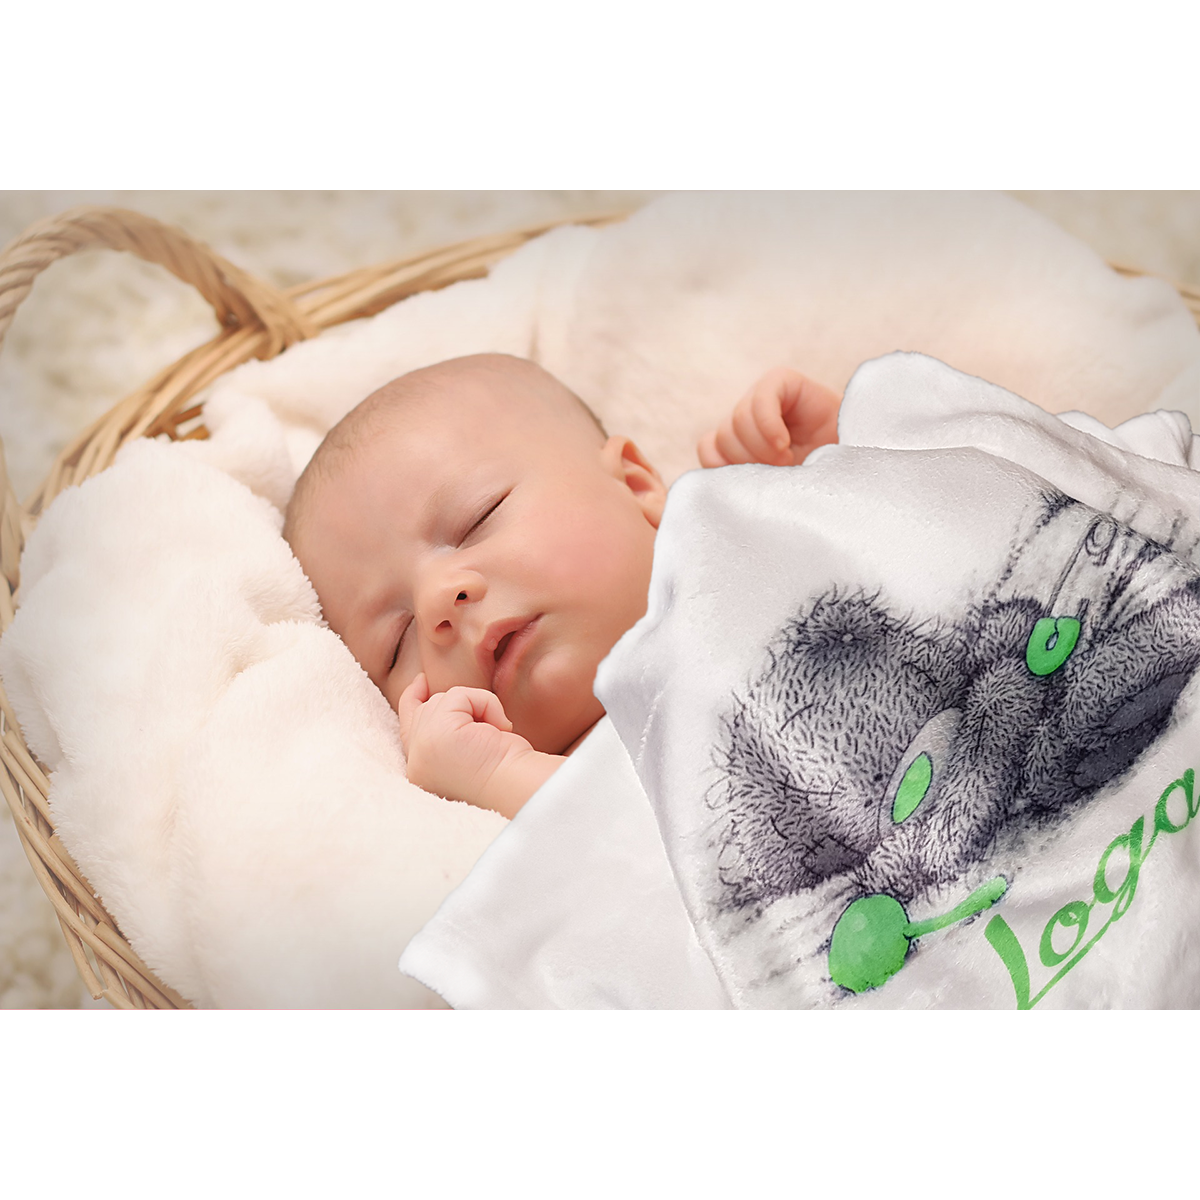 Personalised baby blanket - White - MeeM Store